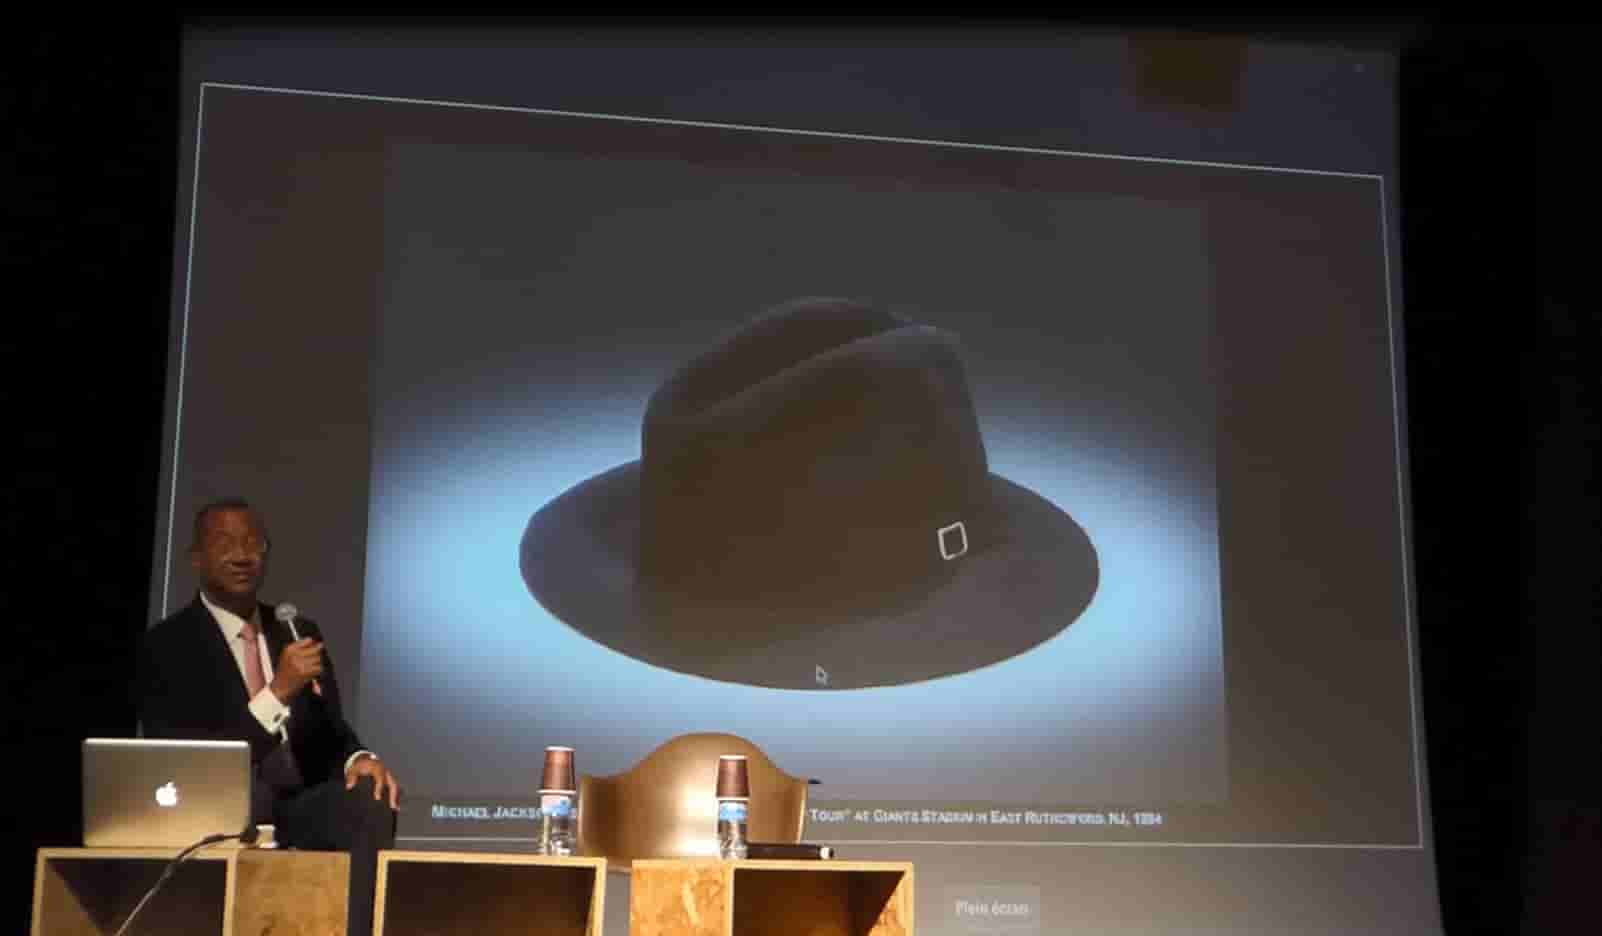 NMAAHC collection - Michael Jackson's hat